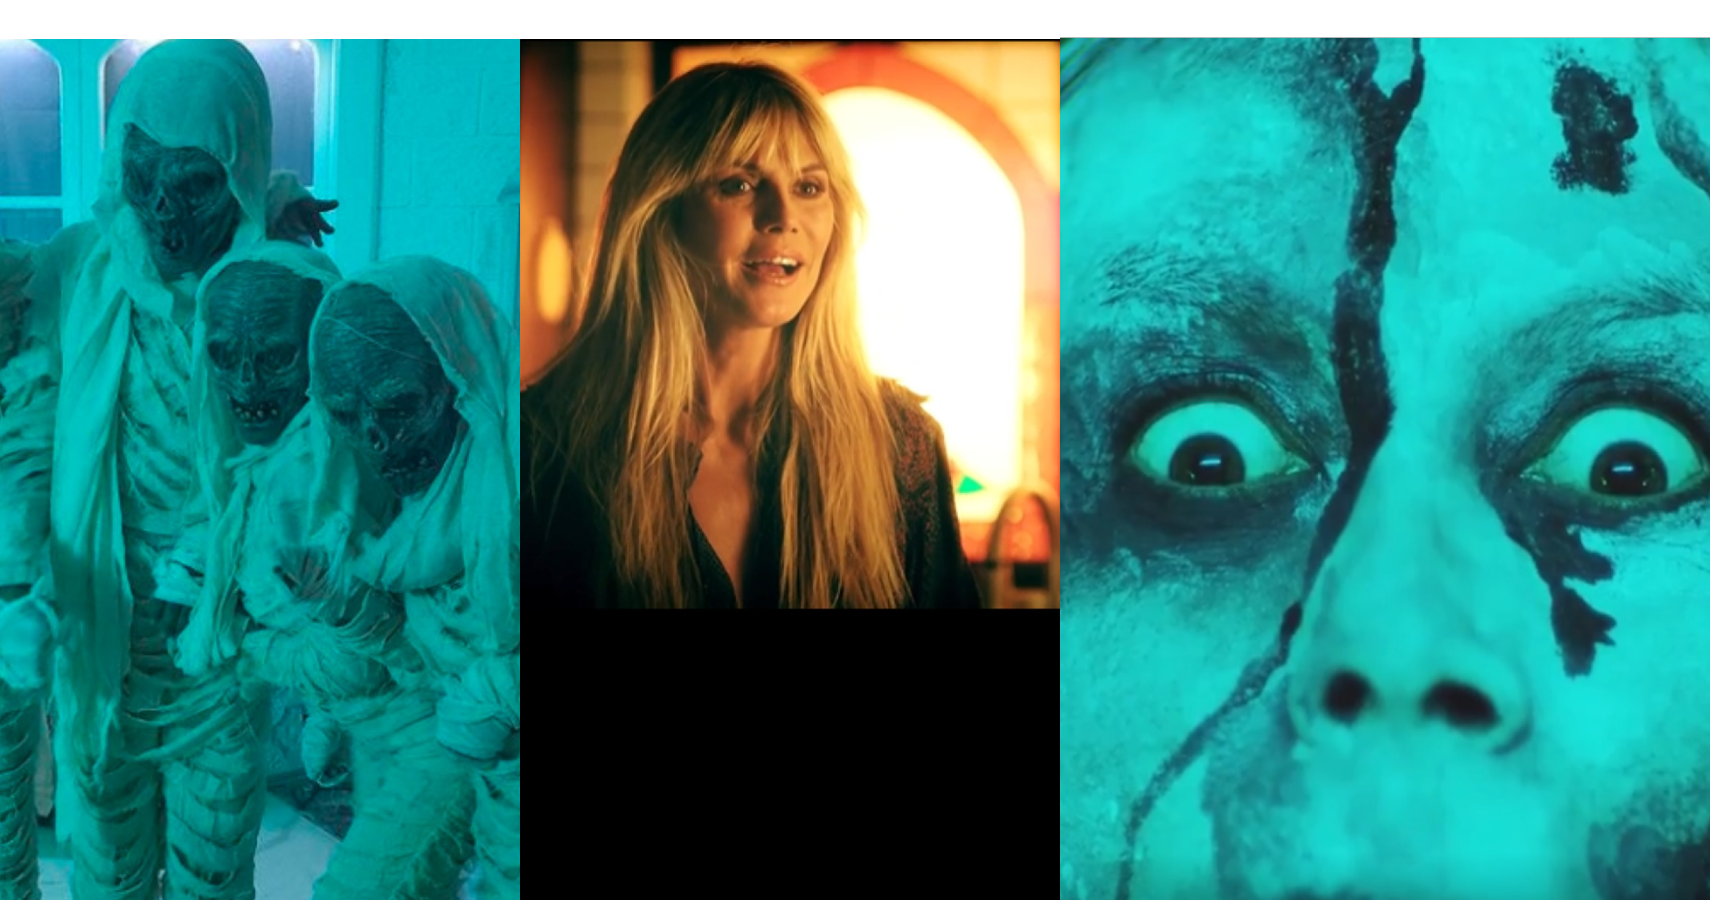 Heidi Klum Makes Short Film For Halloween To Keep Tradition